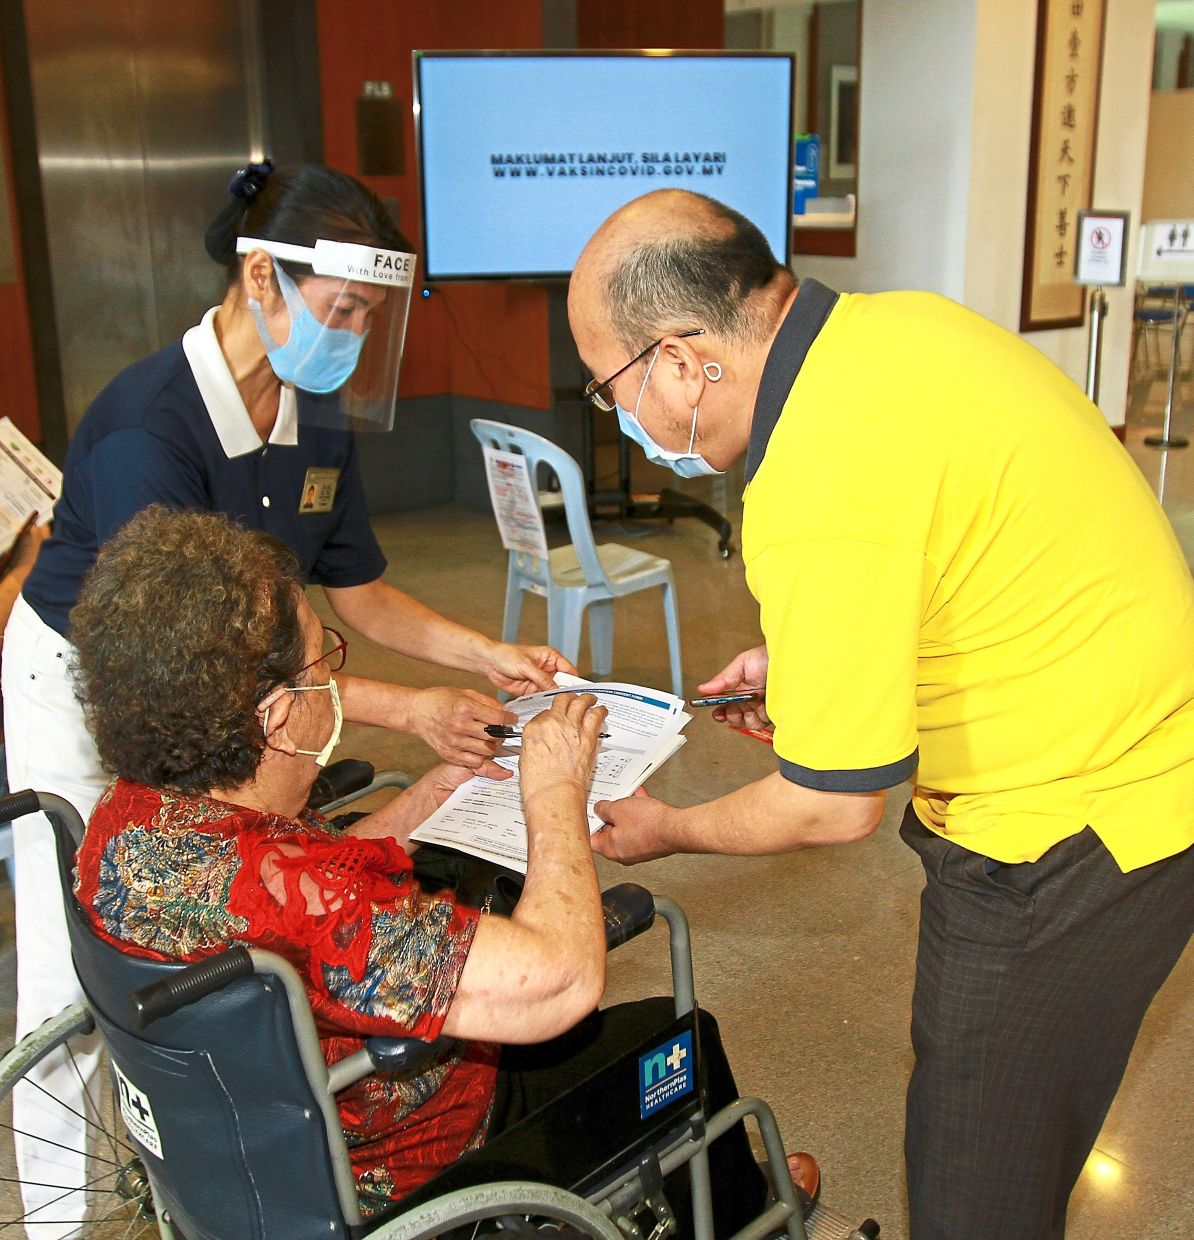 Volunteers stationed at the entrance of the KL Tzu Chi Jing Si Hall to help recipients, who were mostly in their 70s or older.